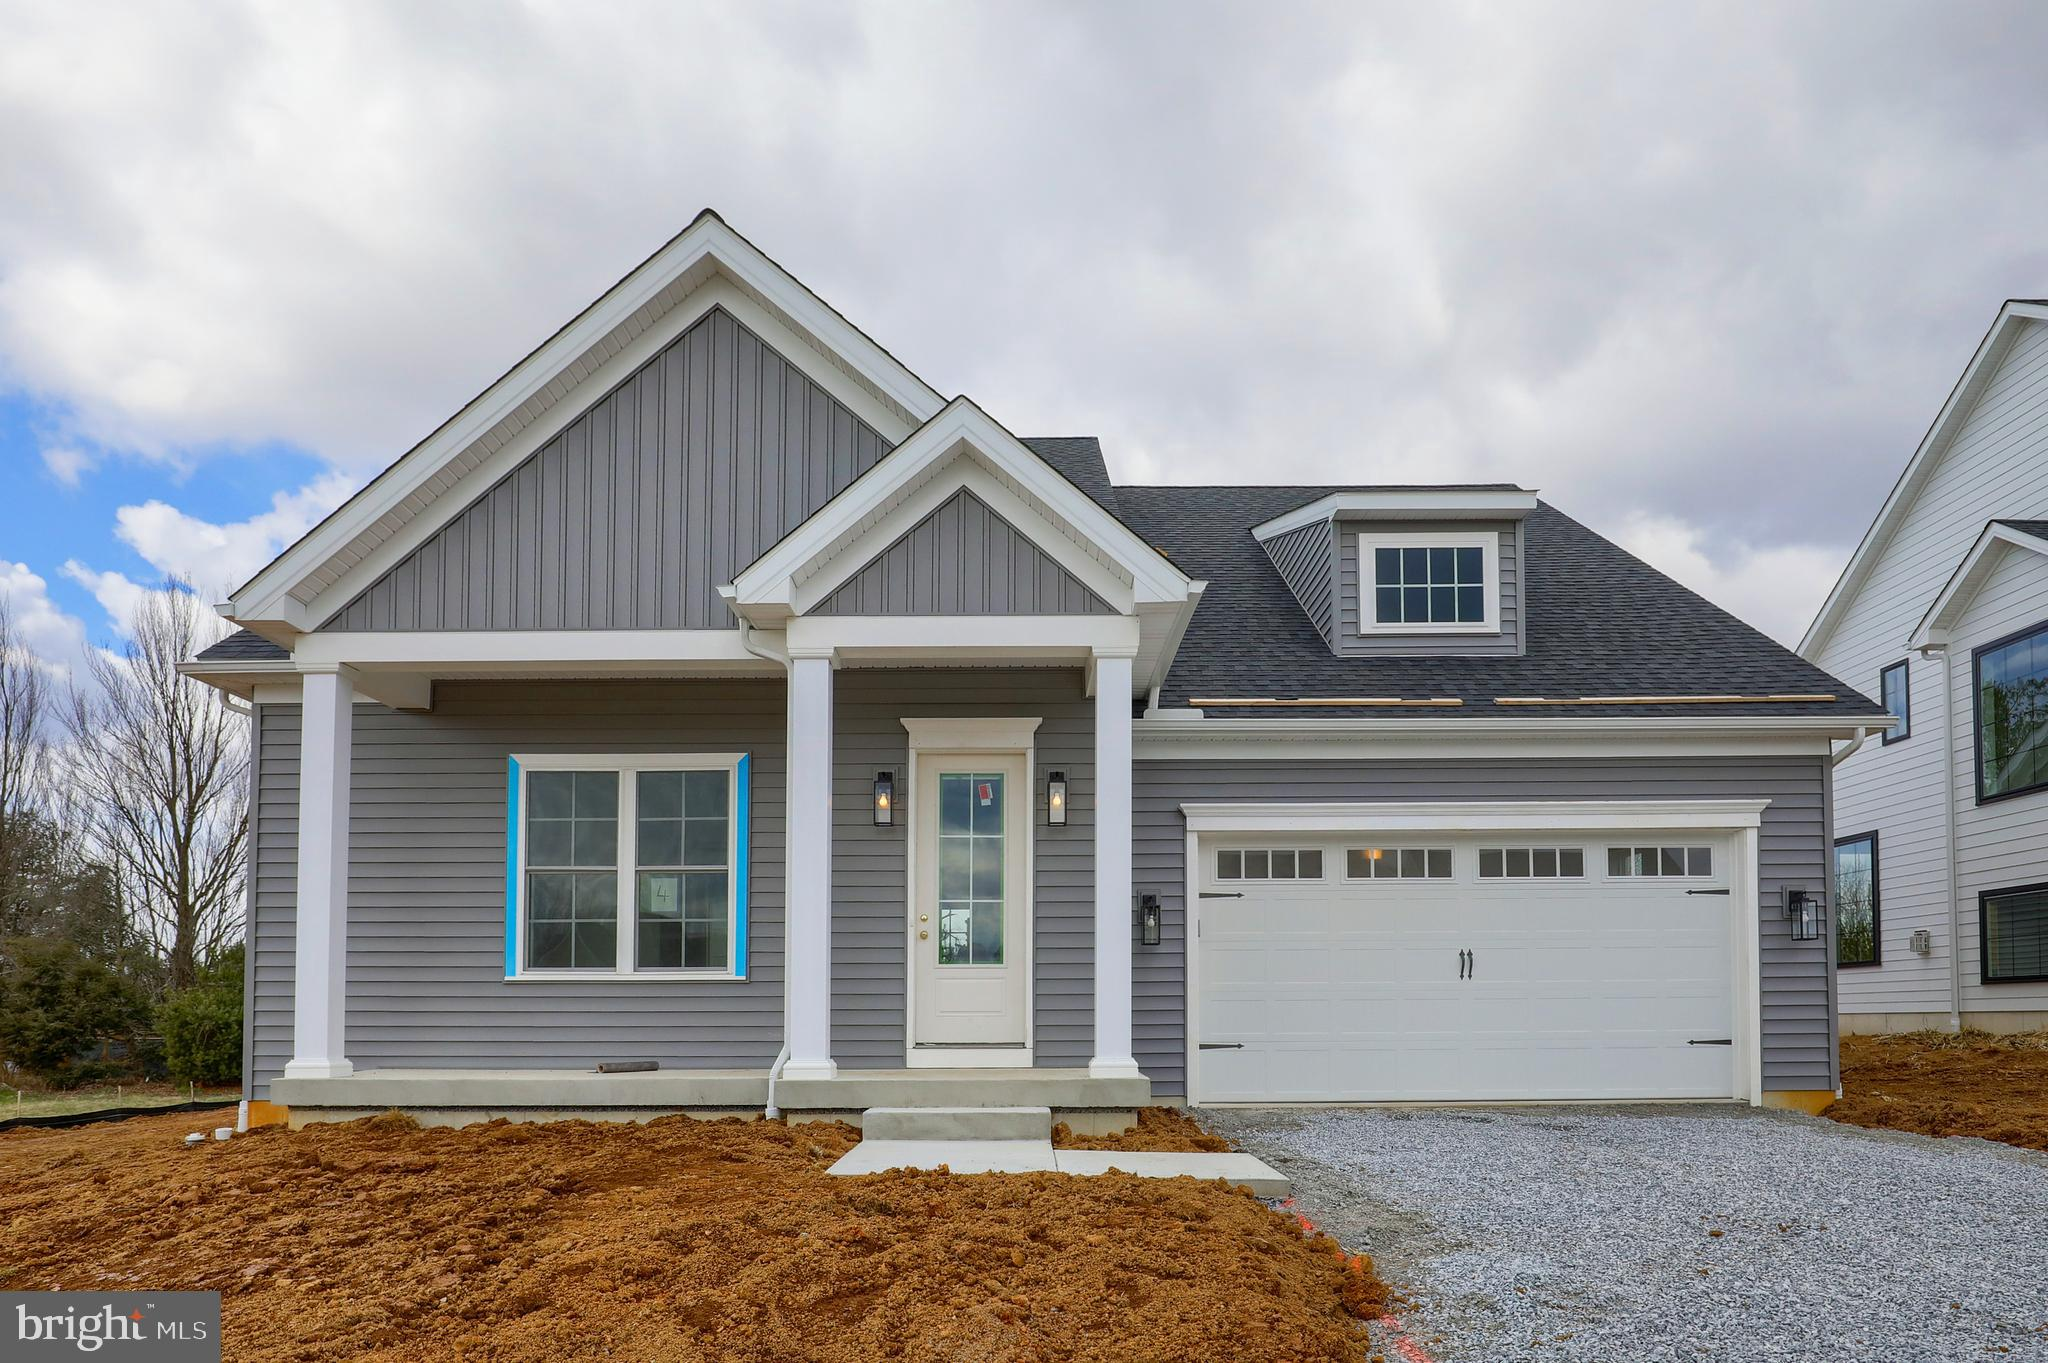 Open House  Sunday 1-2:30*Beautiful Hayden Manor accepting Lot Reservations, Under Construction, Phase 2. Costello Builders Custom two story with a First floor Master Bedroom, connected to a luxurious Master Bathroom with a walk in tile shower and a walk-in closet. Open Floor Plan with tons of room in the Dining Room, Kitchen and Family Room. Large Fireplace for warmth and comfort and plenty of natural light from windows. Custom Kitchen features granite countertops, tile backsplash, center island/breakfast bar and a walk-in pantry. The second floor contains a loft and two bedrooms. Hard Plank exterior, efficient gas heat and central A/C. Conveniently located close to Highways, Lancaster/Hershey/Harrisburg/York/Reading, Shops, schools. Within walking distance to Post Office, Mad Chef, 24 Hour Fitness, S Clyde Weaver's, Dunkin Donuts, cafe, shops, parks and walking trails.